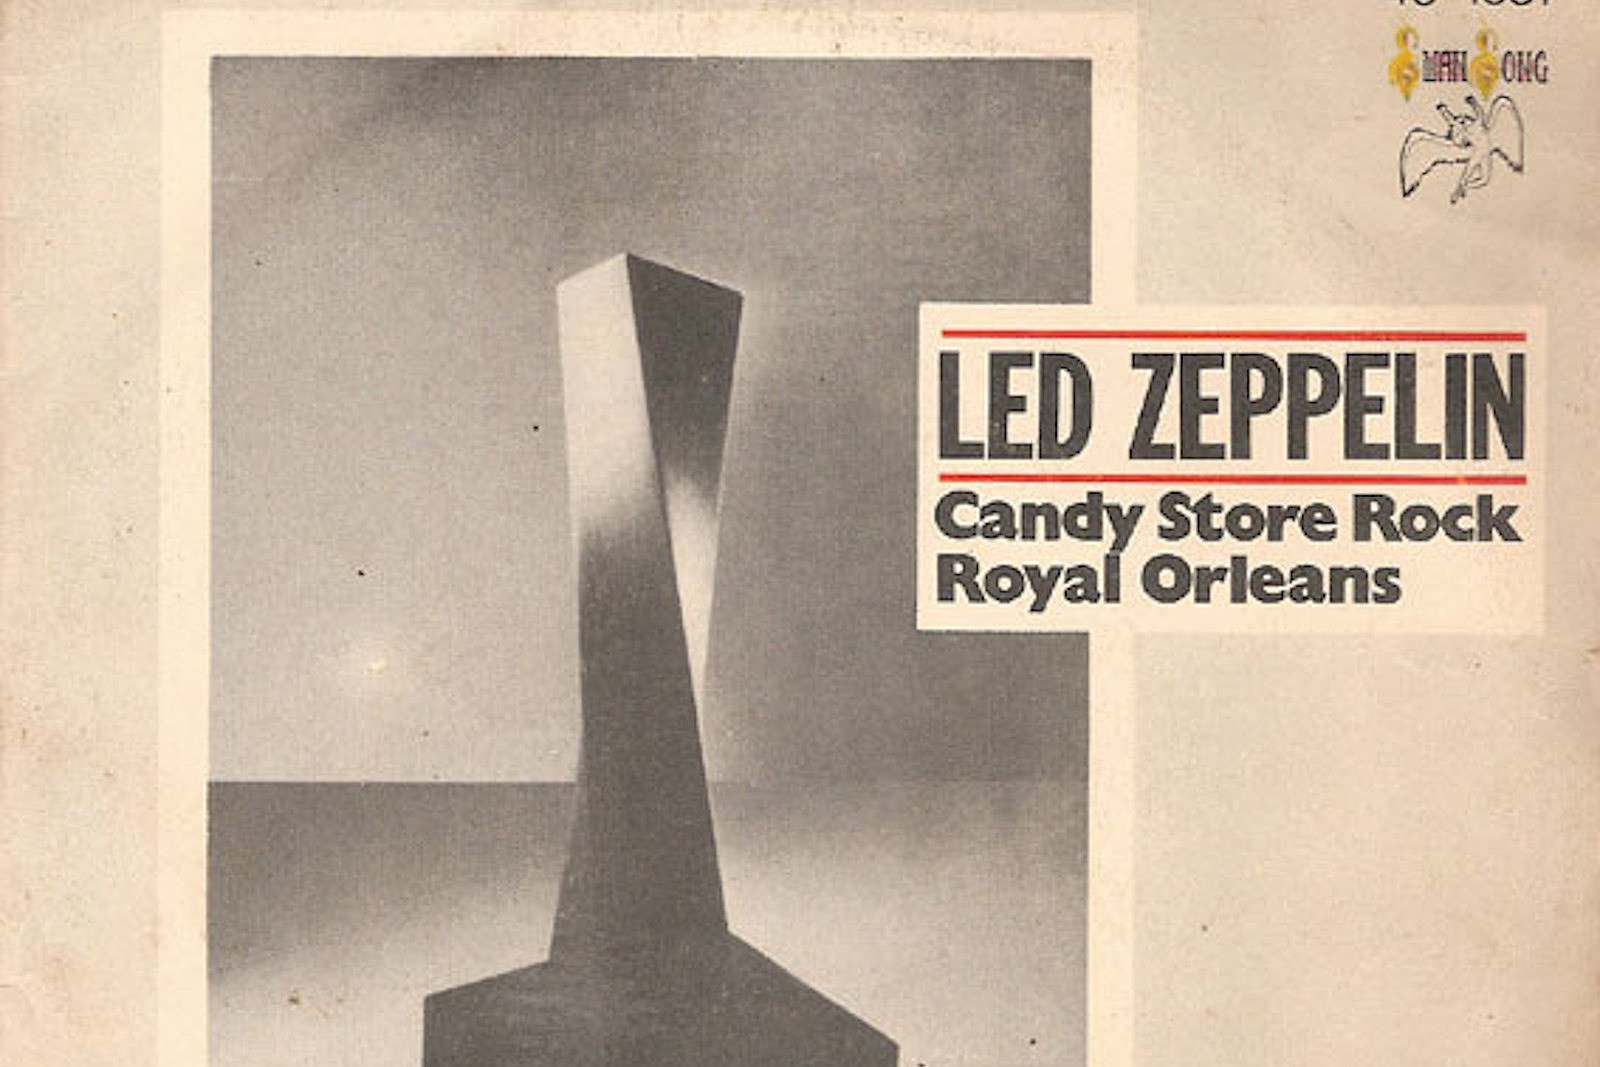 45 Years Ago: Led Zeppelin Go Rockabilly With 'Candy Store Rock'